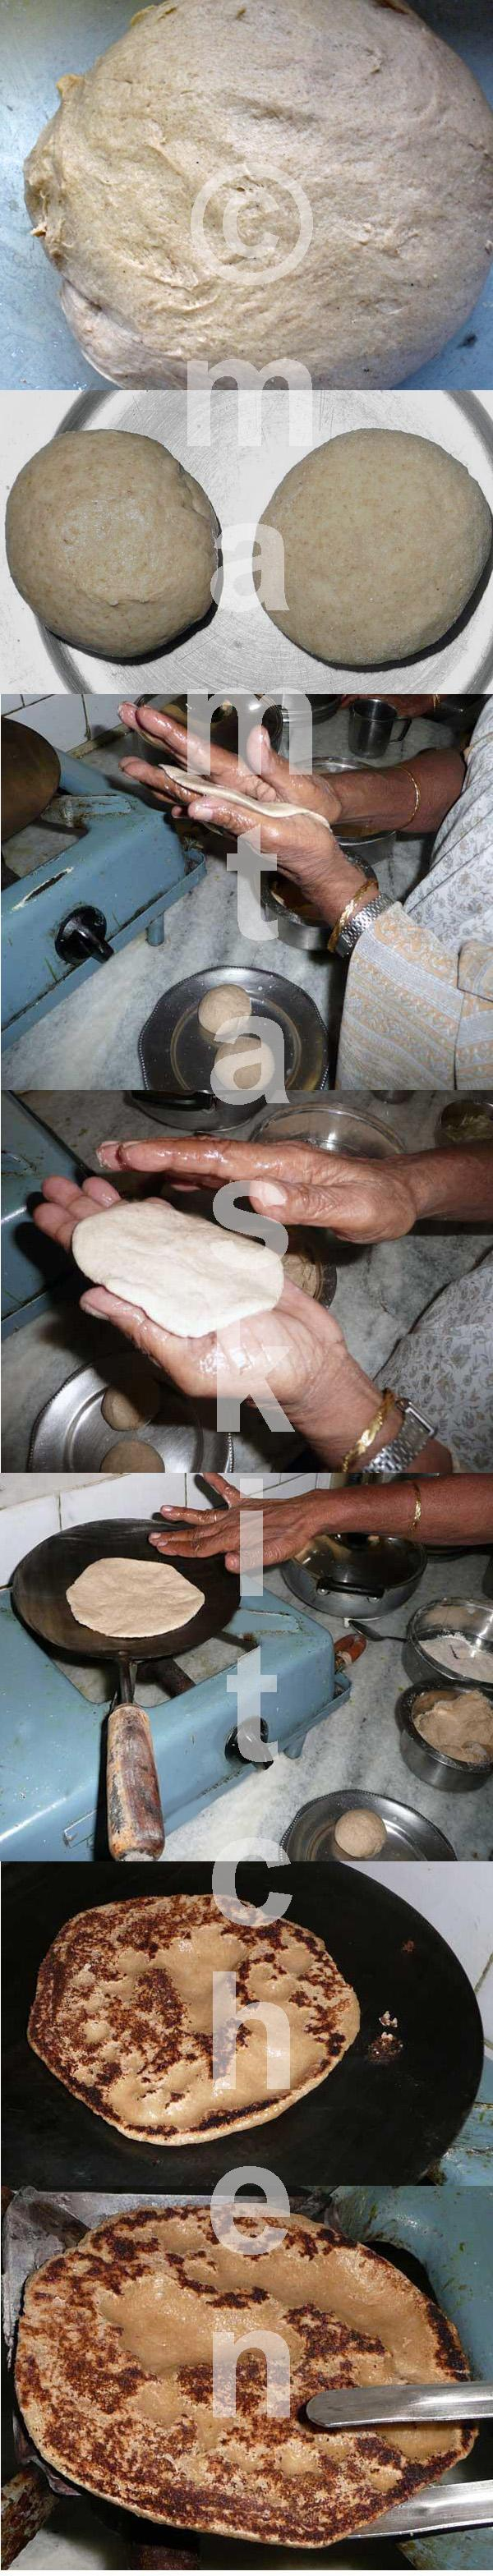 Roti Made With Wetted Palms